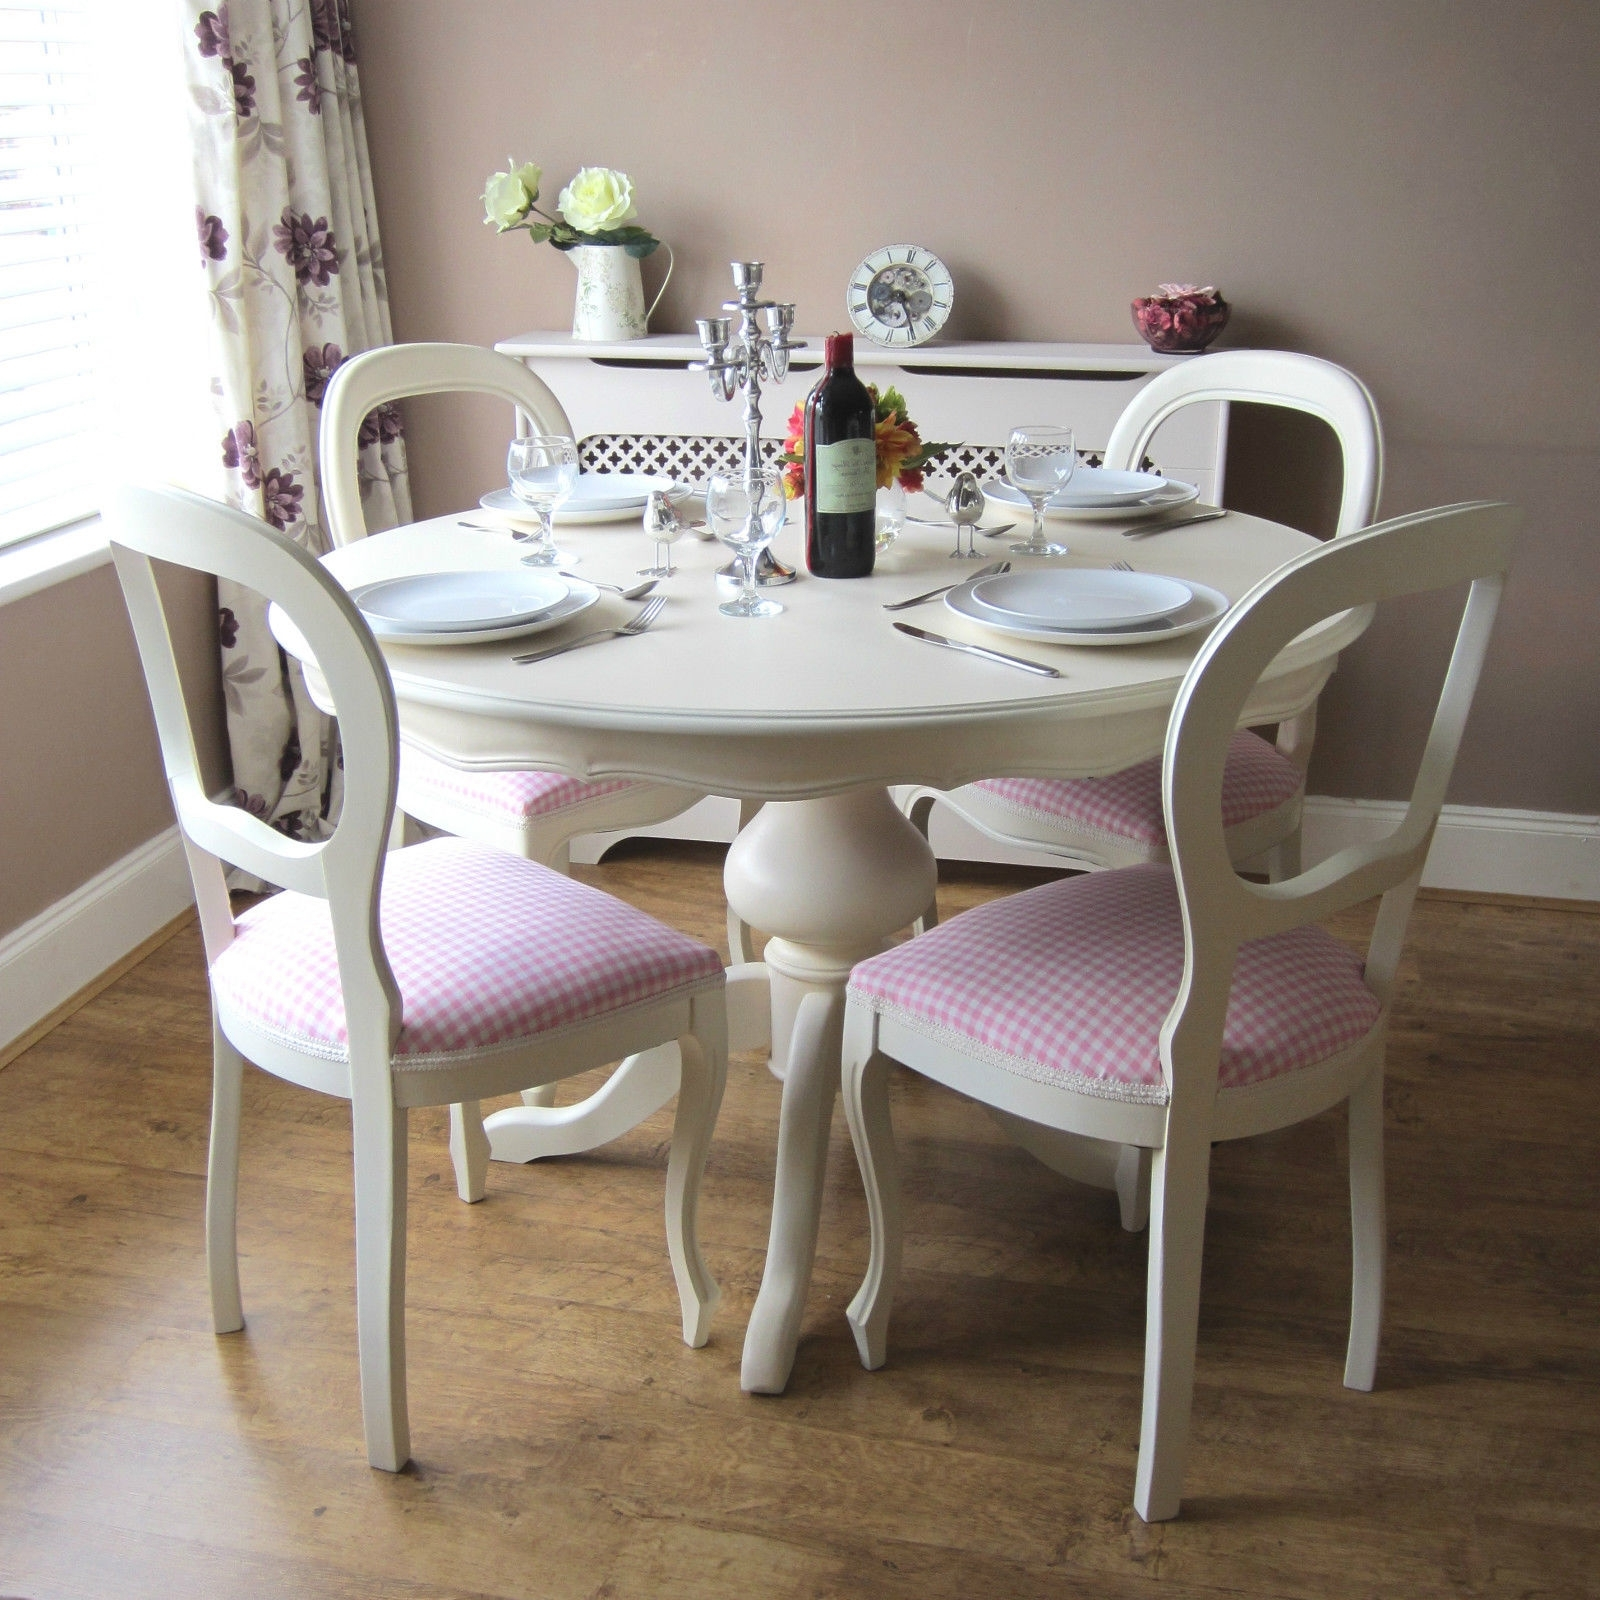 Shabby Chic Table And Chairs (View 14 of 25)